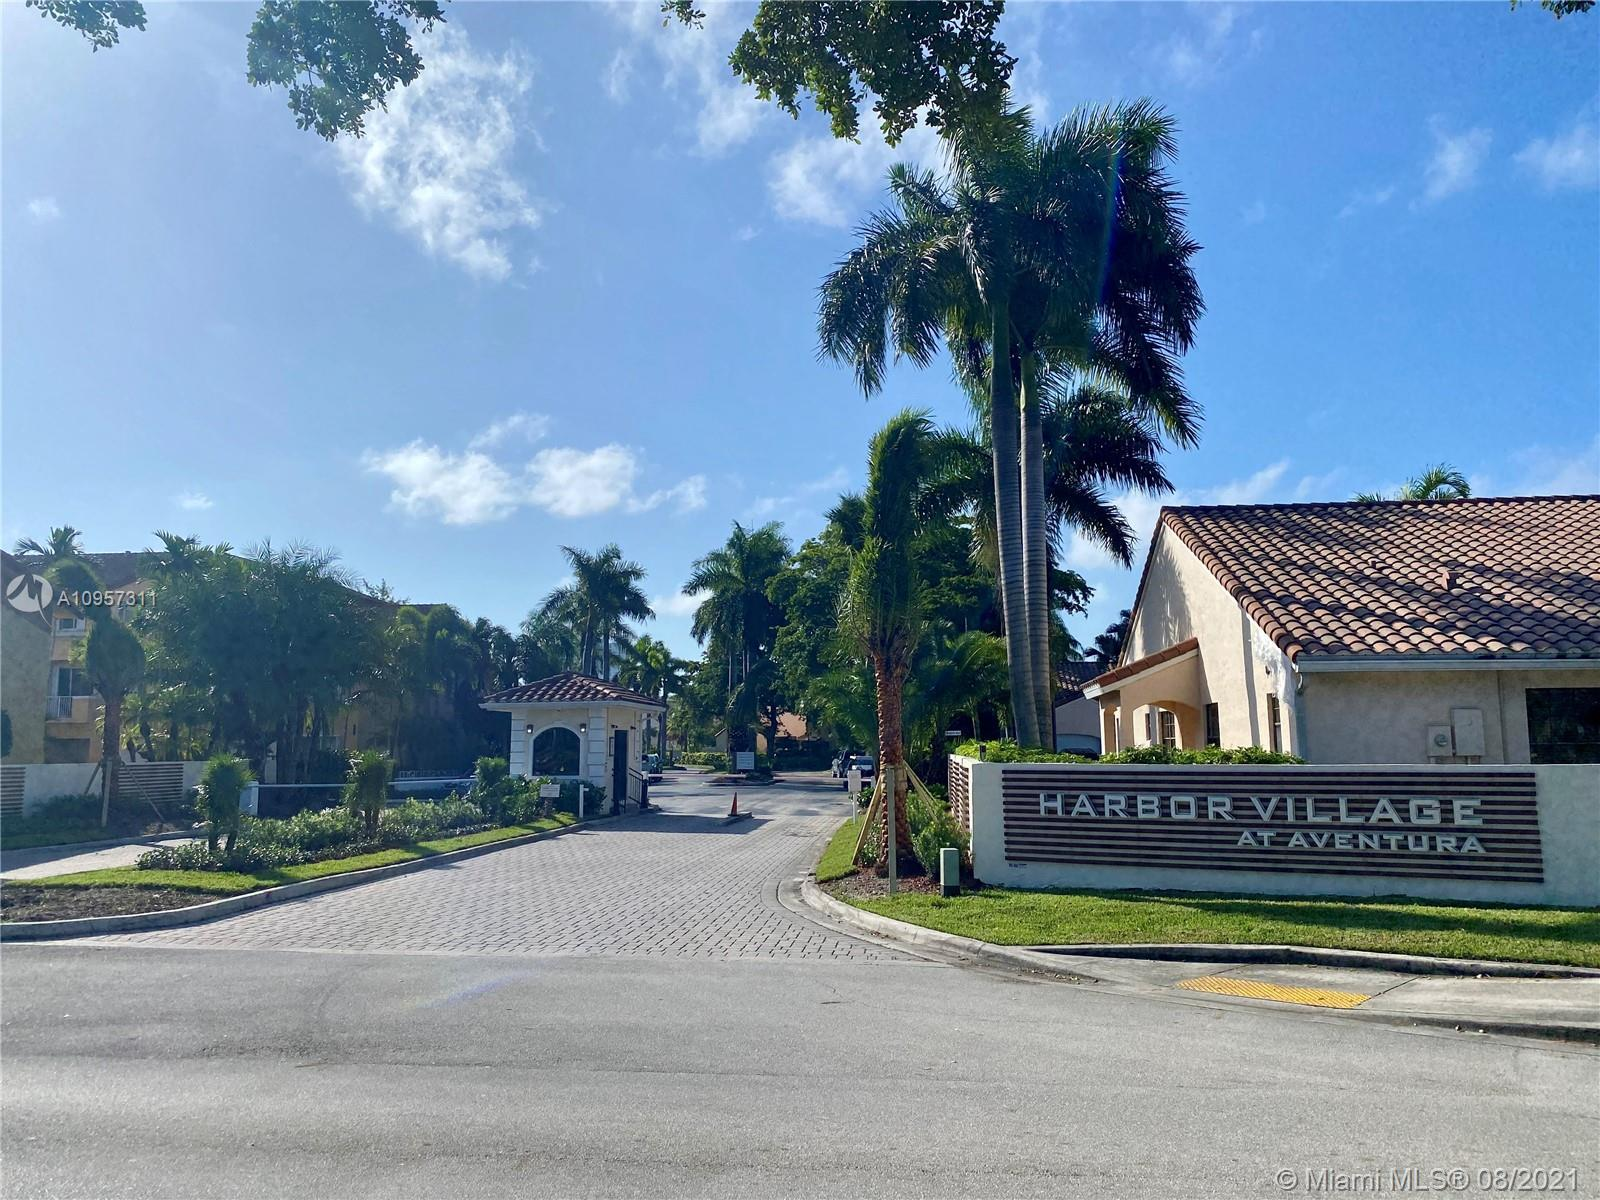 3 STORY 4BED/3.5 BATHS TOWNHOUSE IN GORGEOUS GATED WATERWAYS COMMUNITY.  COMMUNITY OFFERS 24 HOUR SE